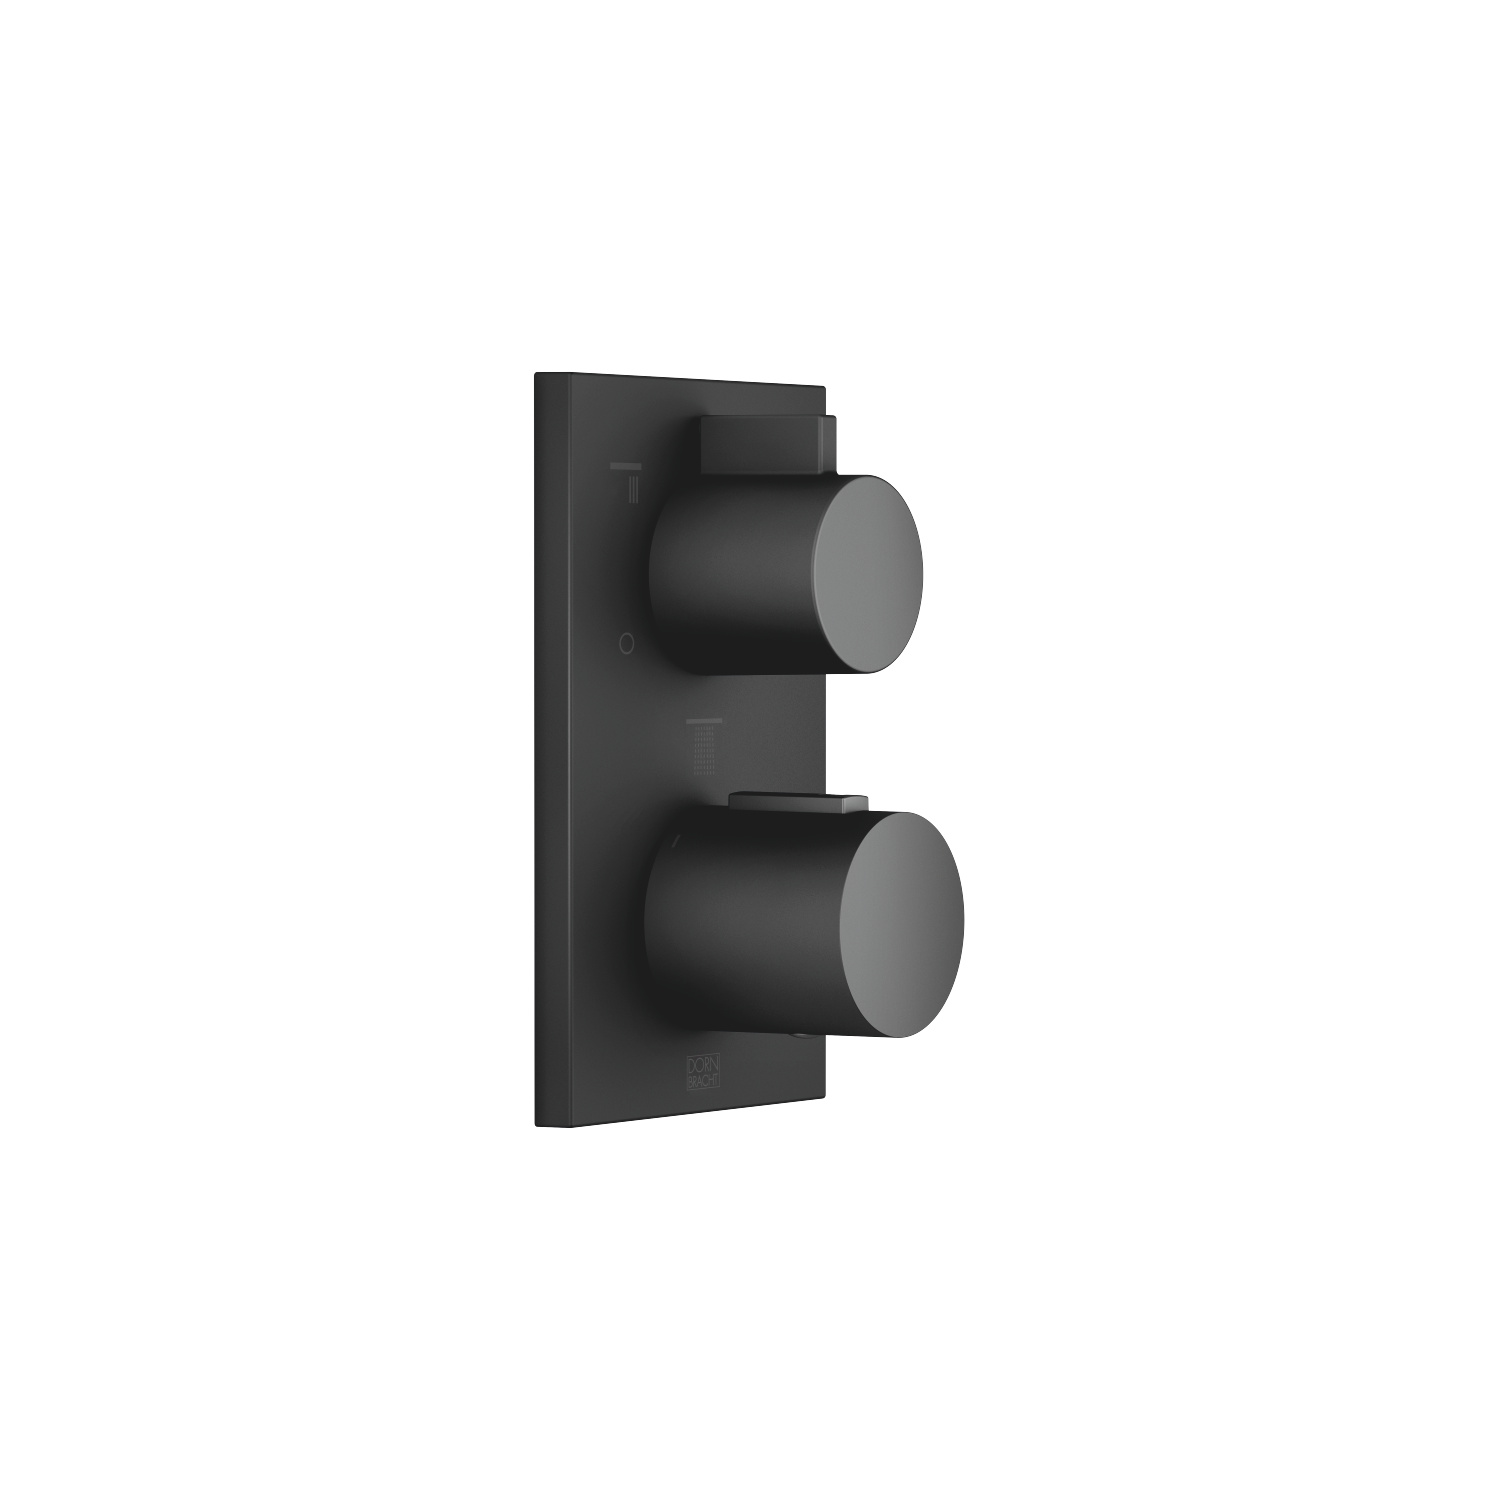 Concealed thermostat with three function volume control - matt black